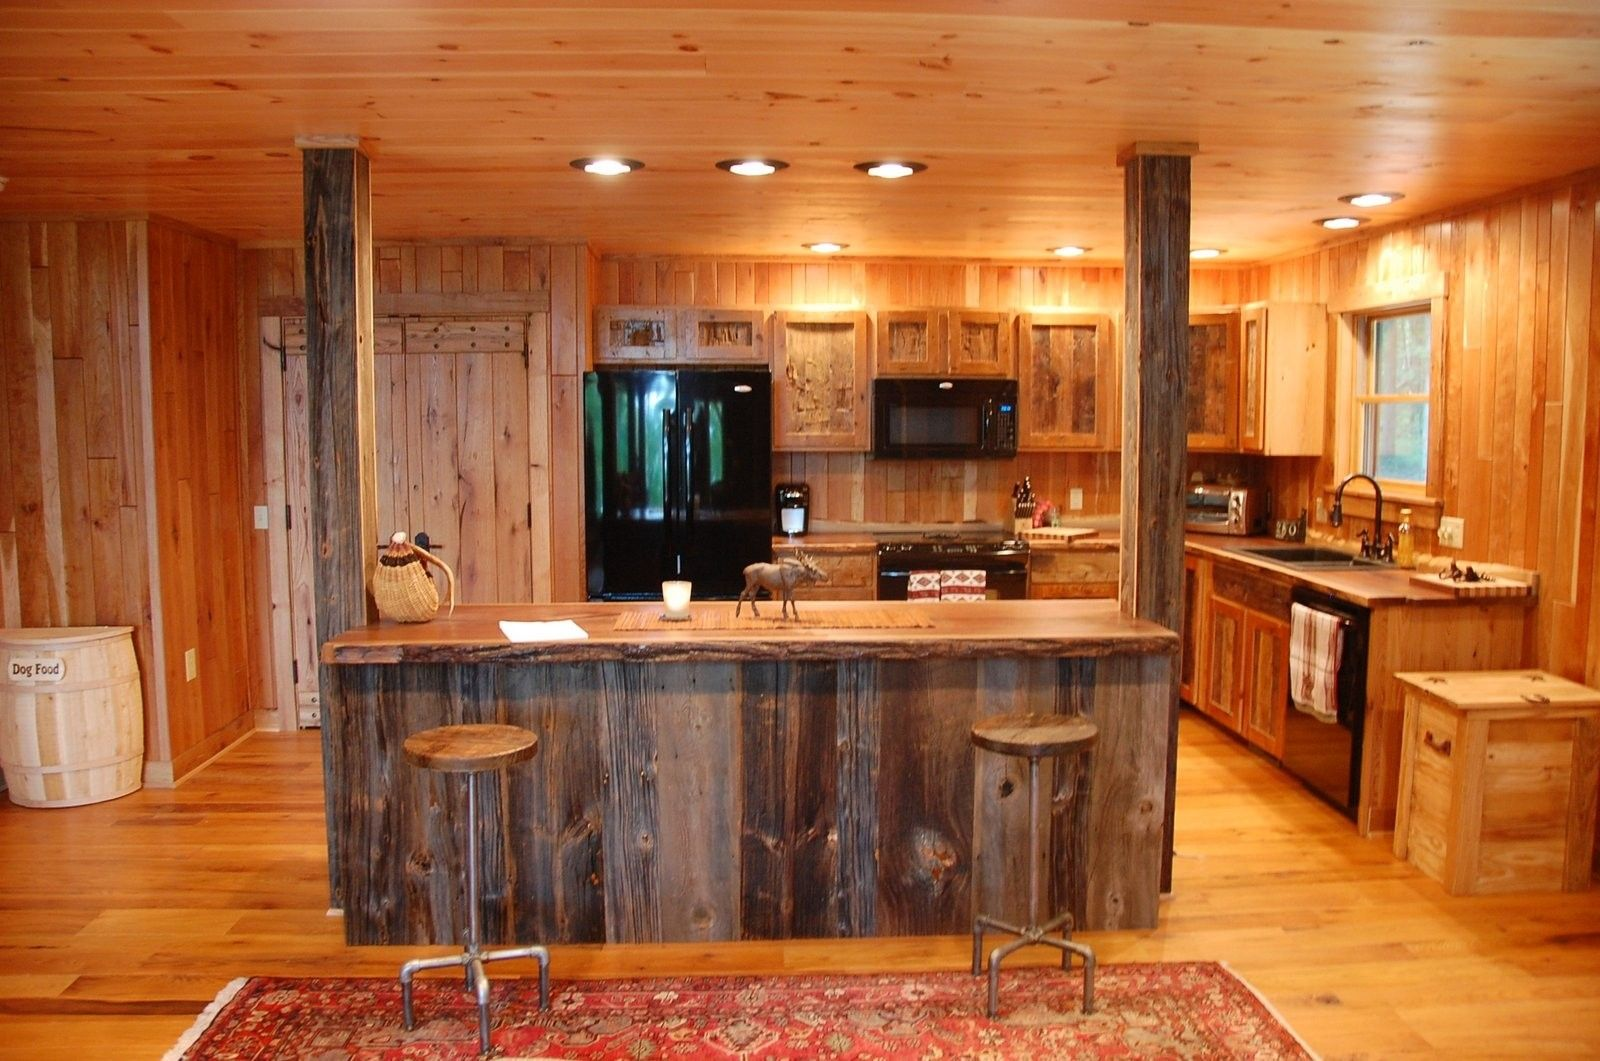 Custom Made Reclaimed Wood Rustic Kitchen Cabinets By Corey Morgan Wood Works